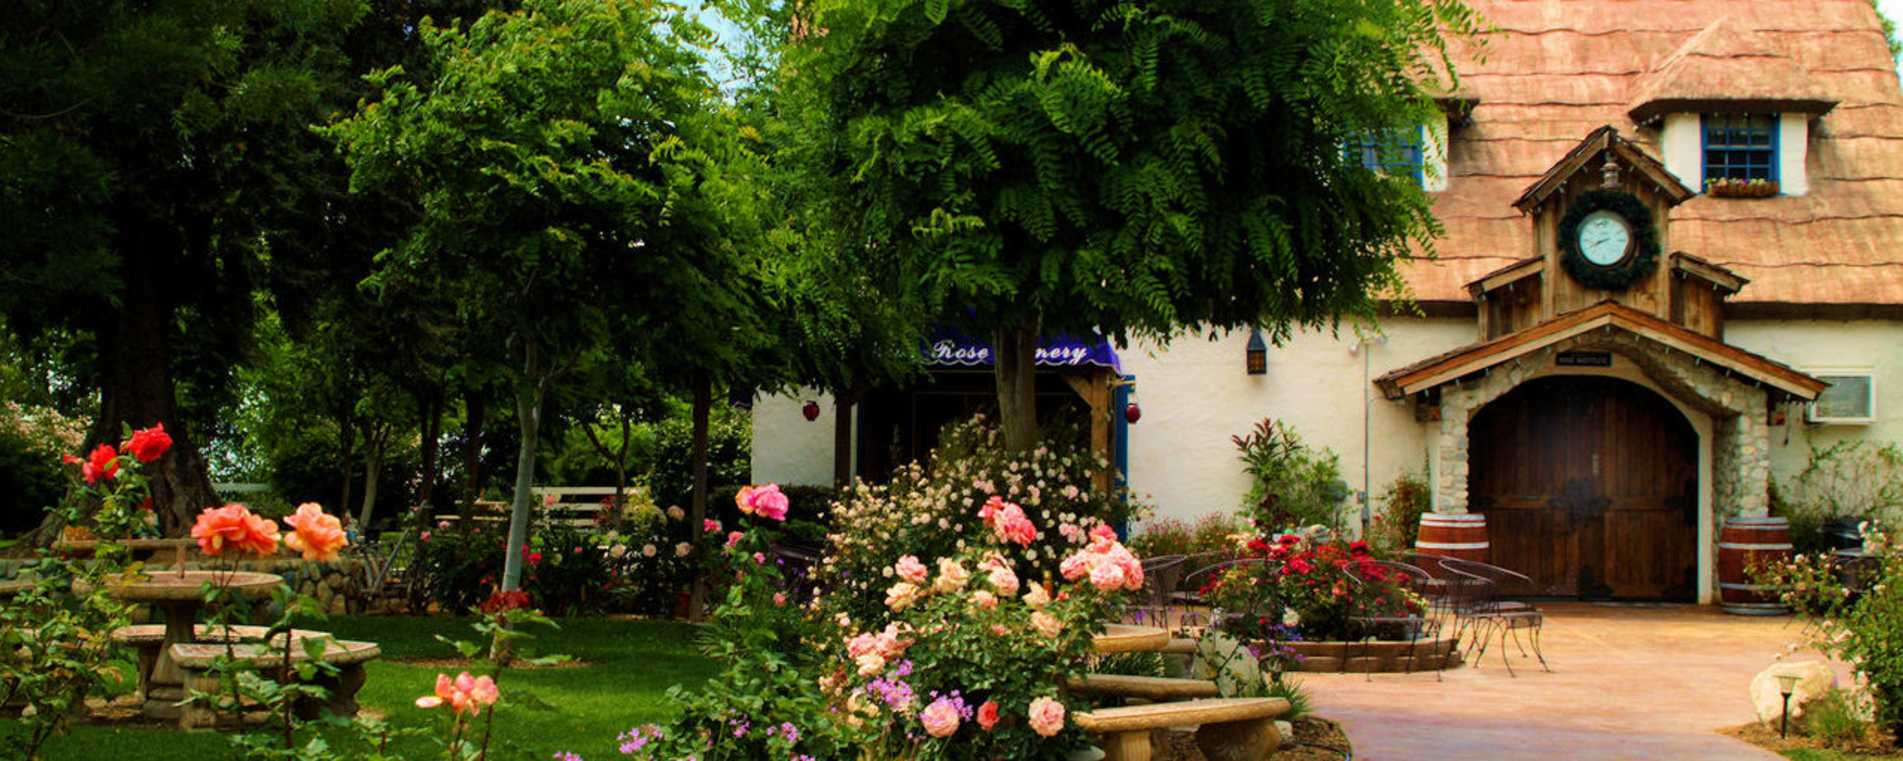 Briar Rose Winery - Temecula